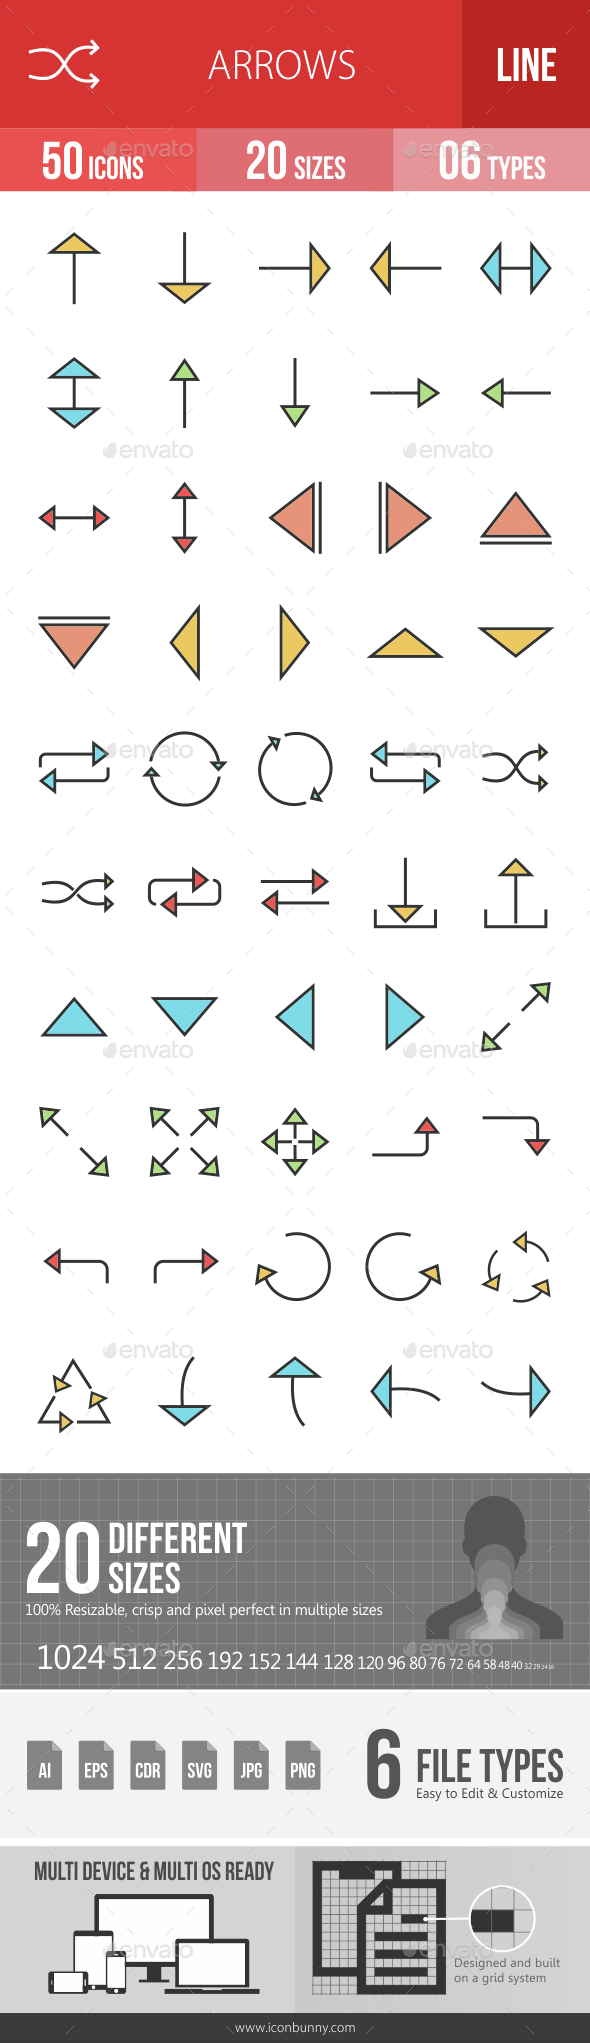 Arrows Filled Line Icons - Icons